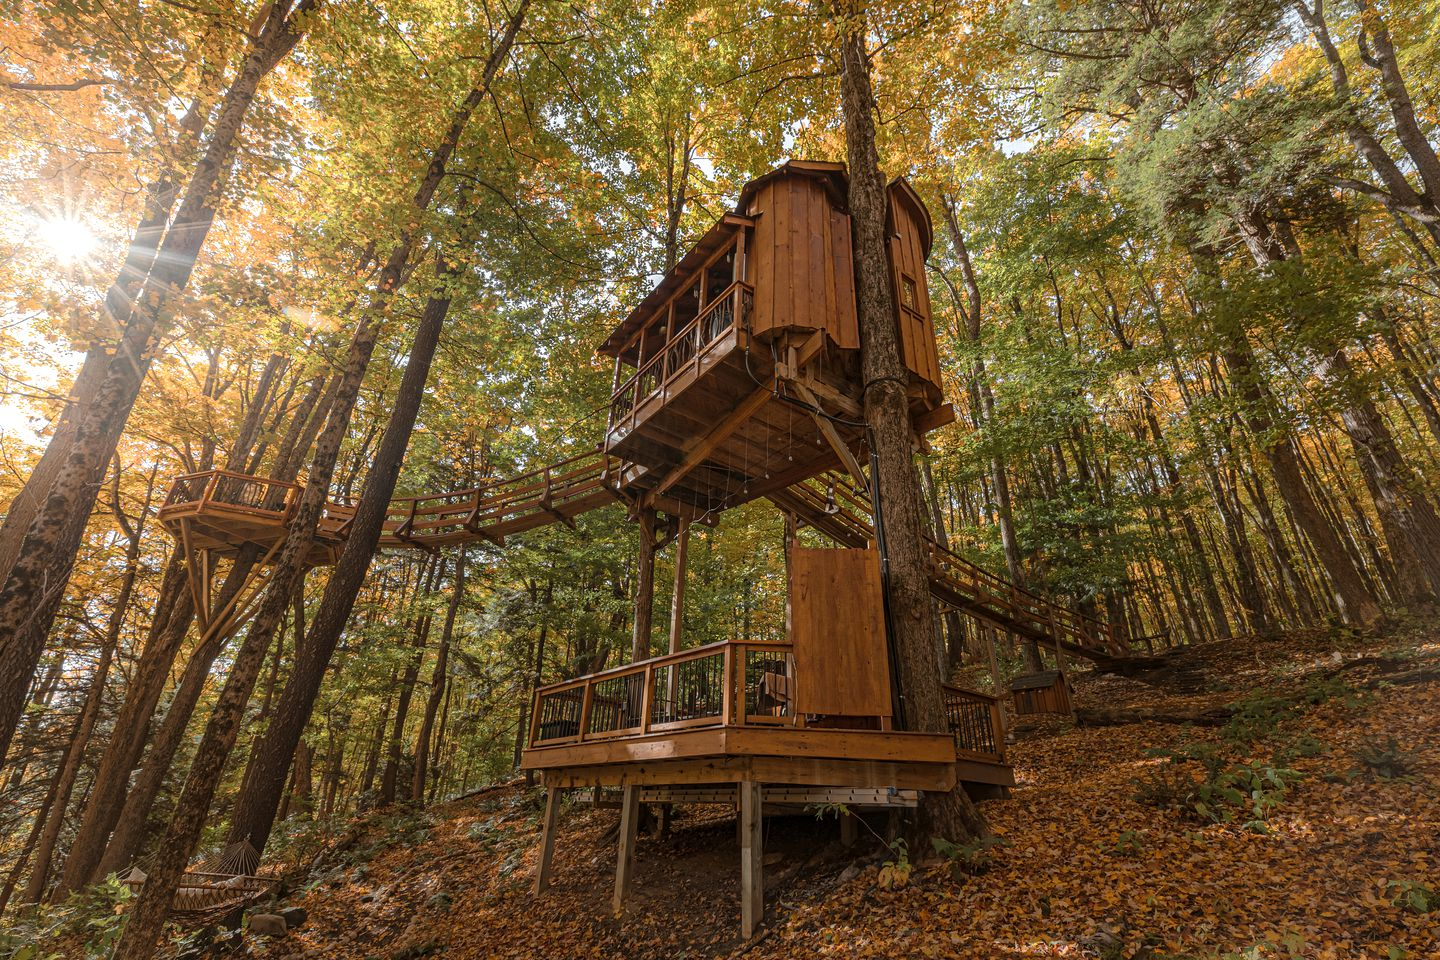 Magical Tree House Rental in the Woods near Syracuse for Glamping in New York State